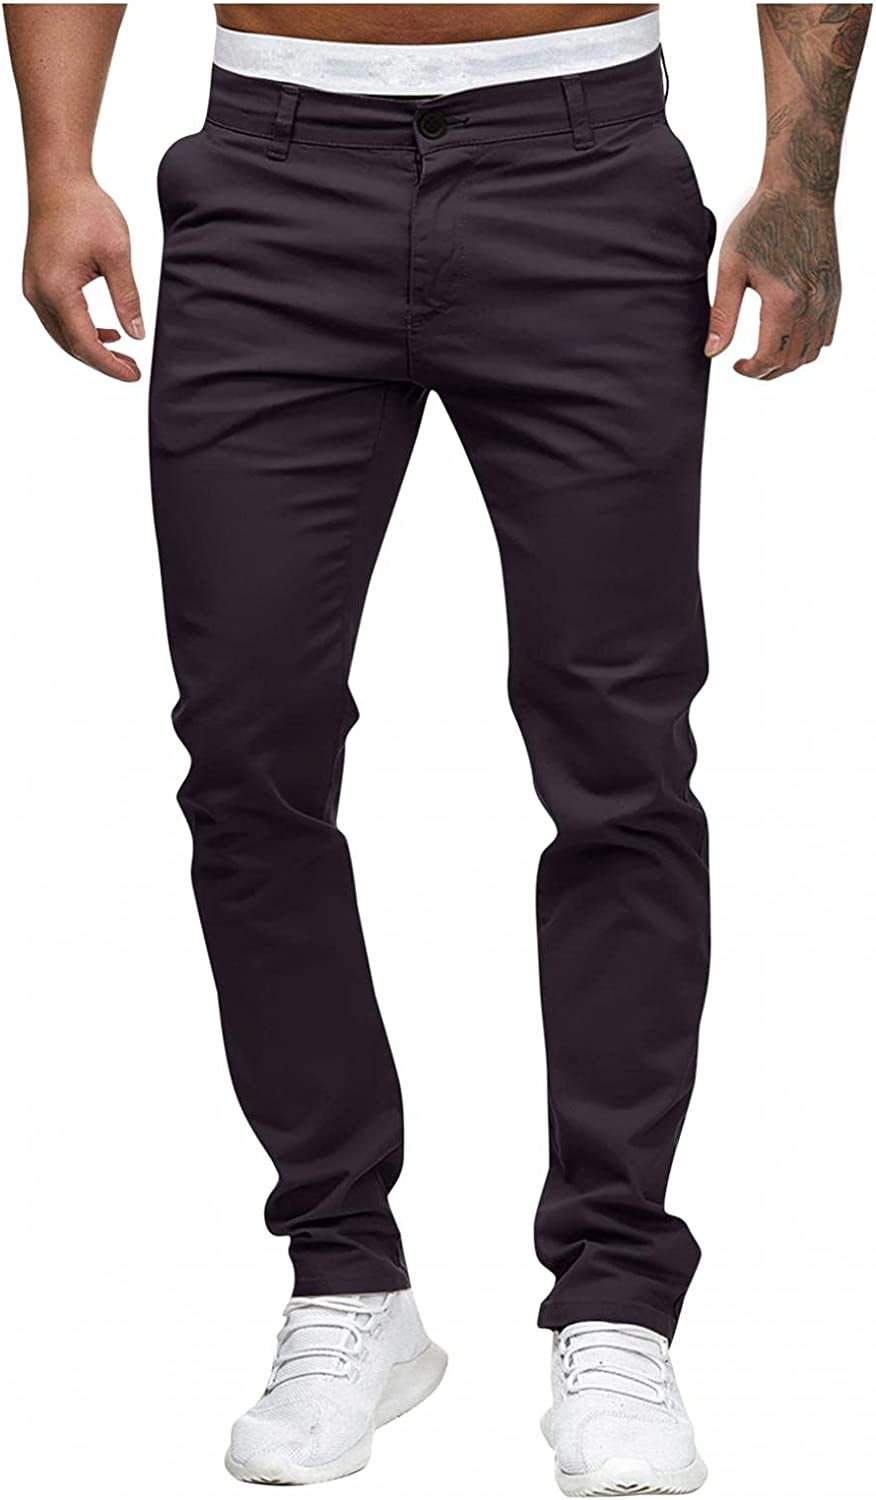 FUNEY Men's Stretch Khaki Modern-Fit Flat-Front Pant Casual Pockets Skinny Colored Slim Tapered Chino Pants Trousers